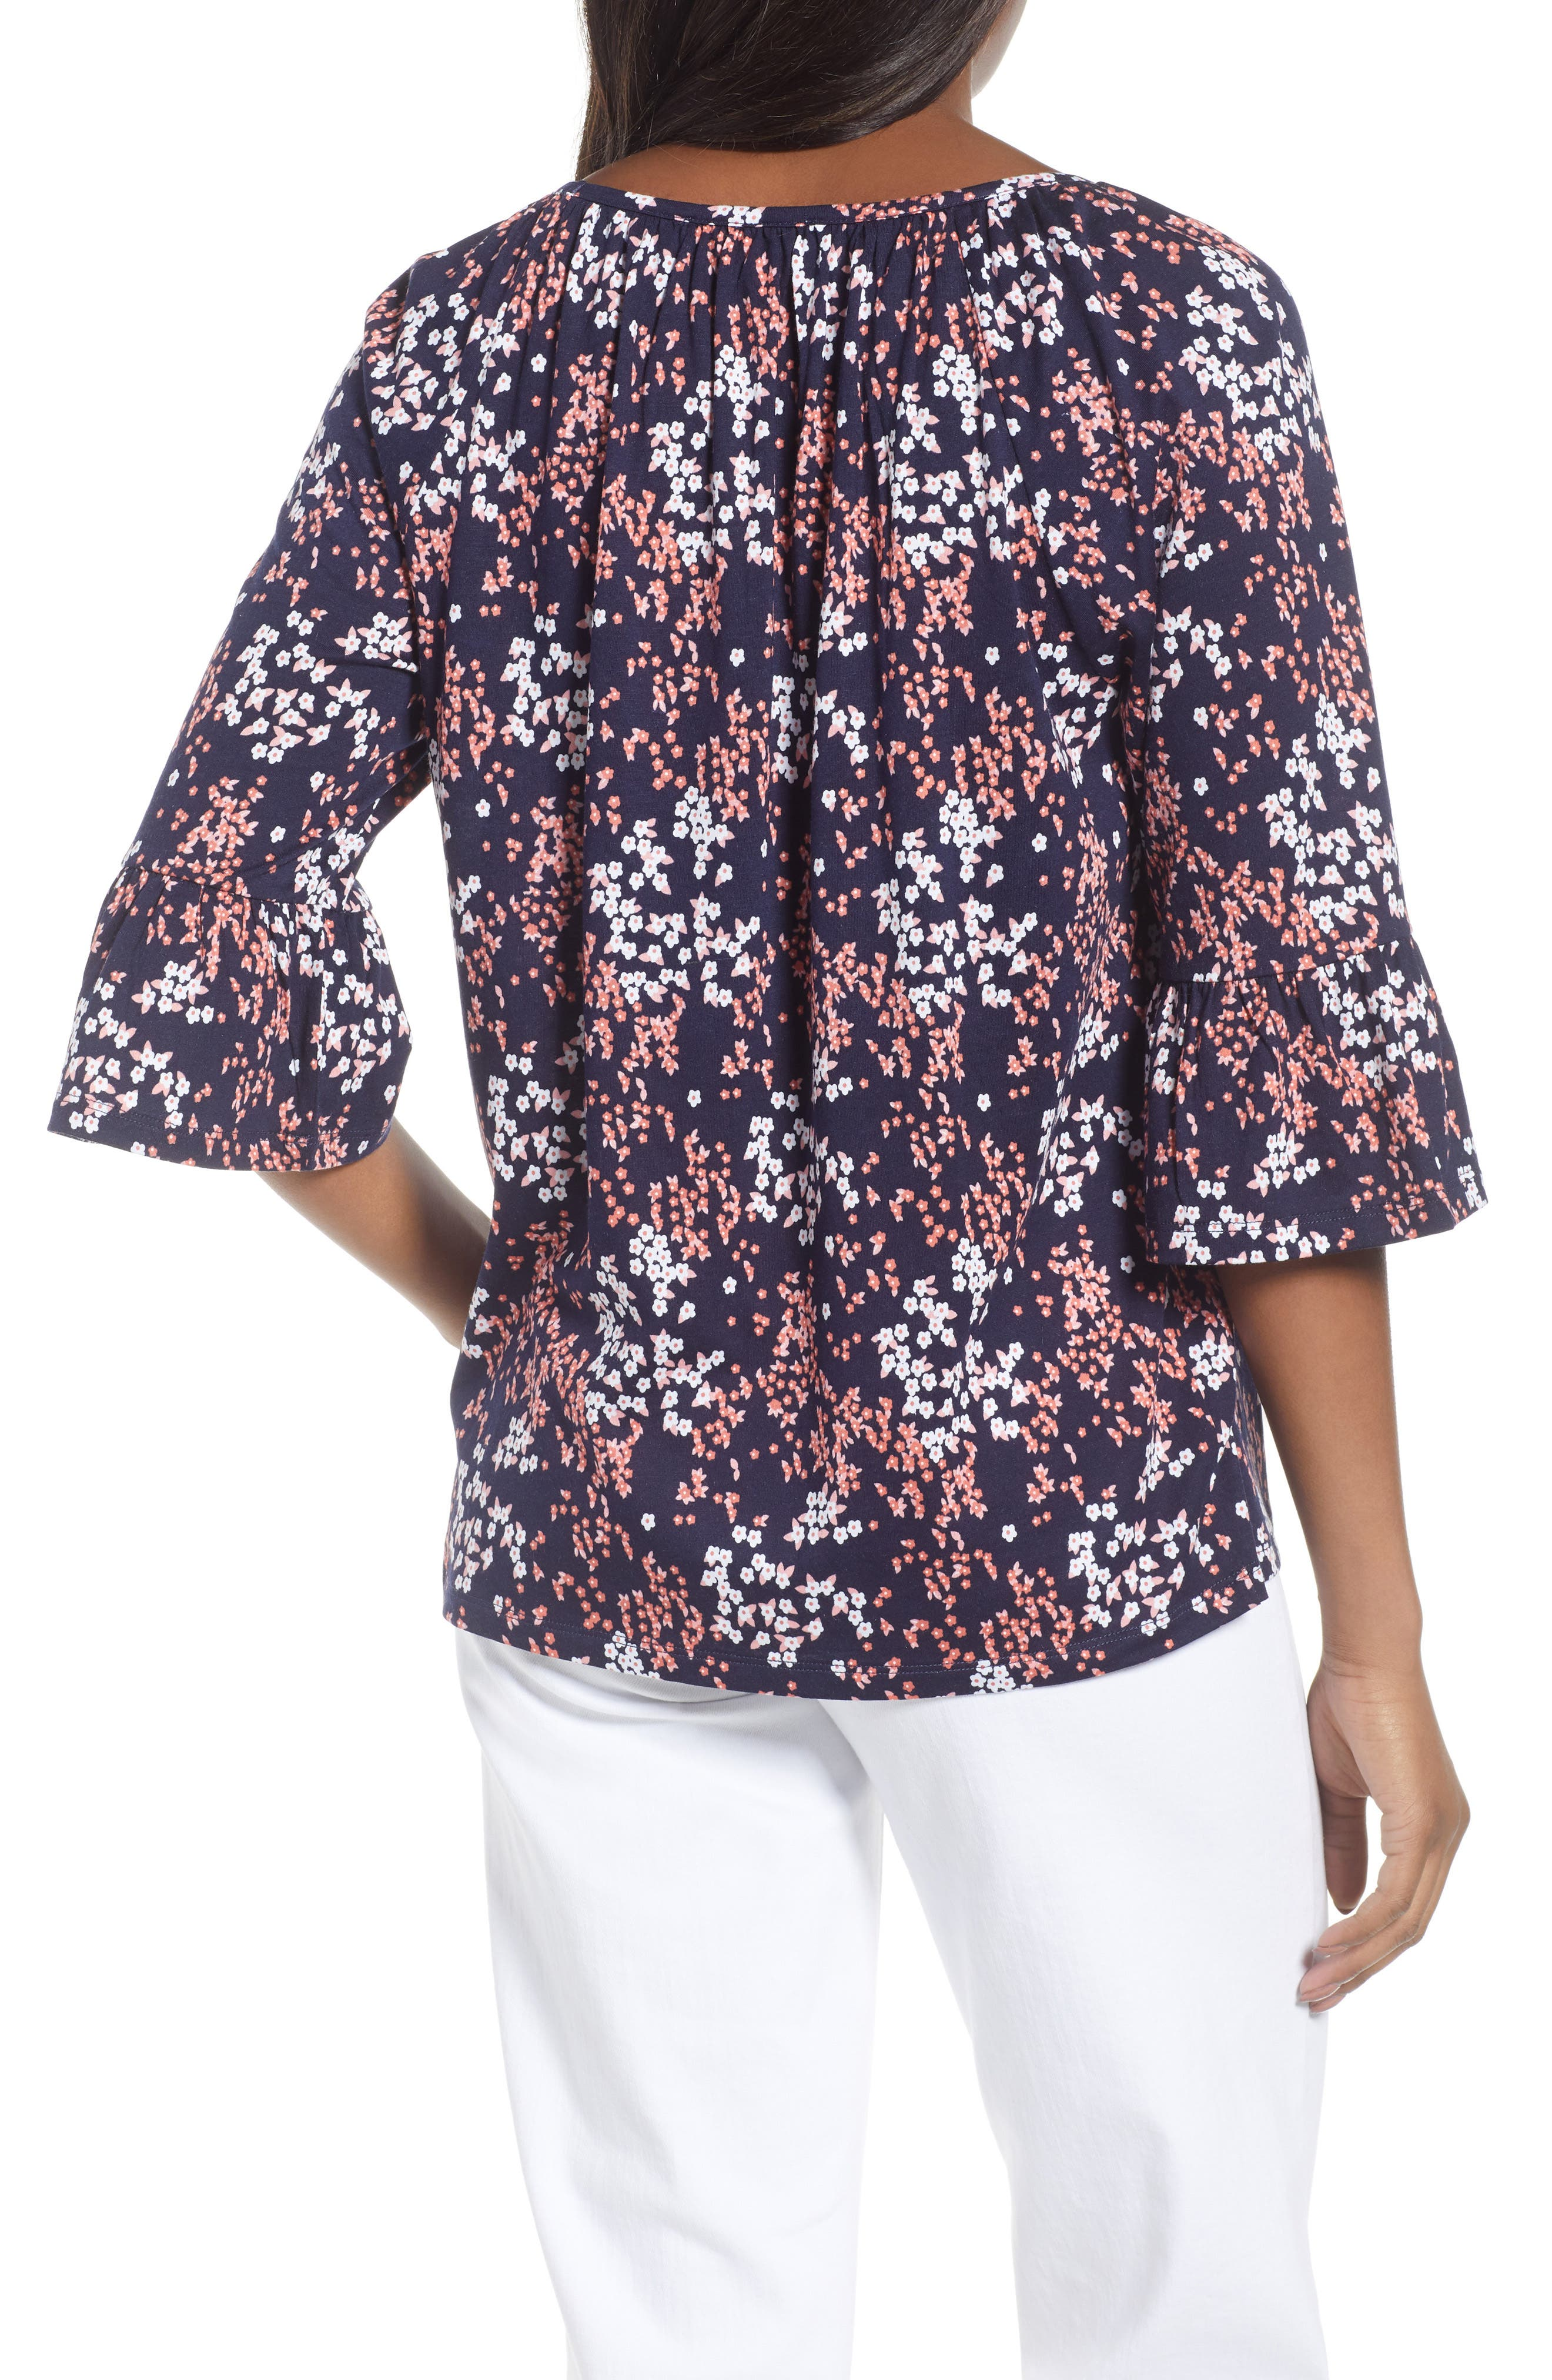 Scattered Blooms Print Peasant Top,                             Alternate thumbnail 2, color,                             True Navy/ Bright Blush